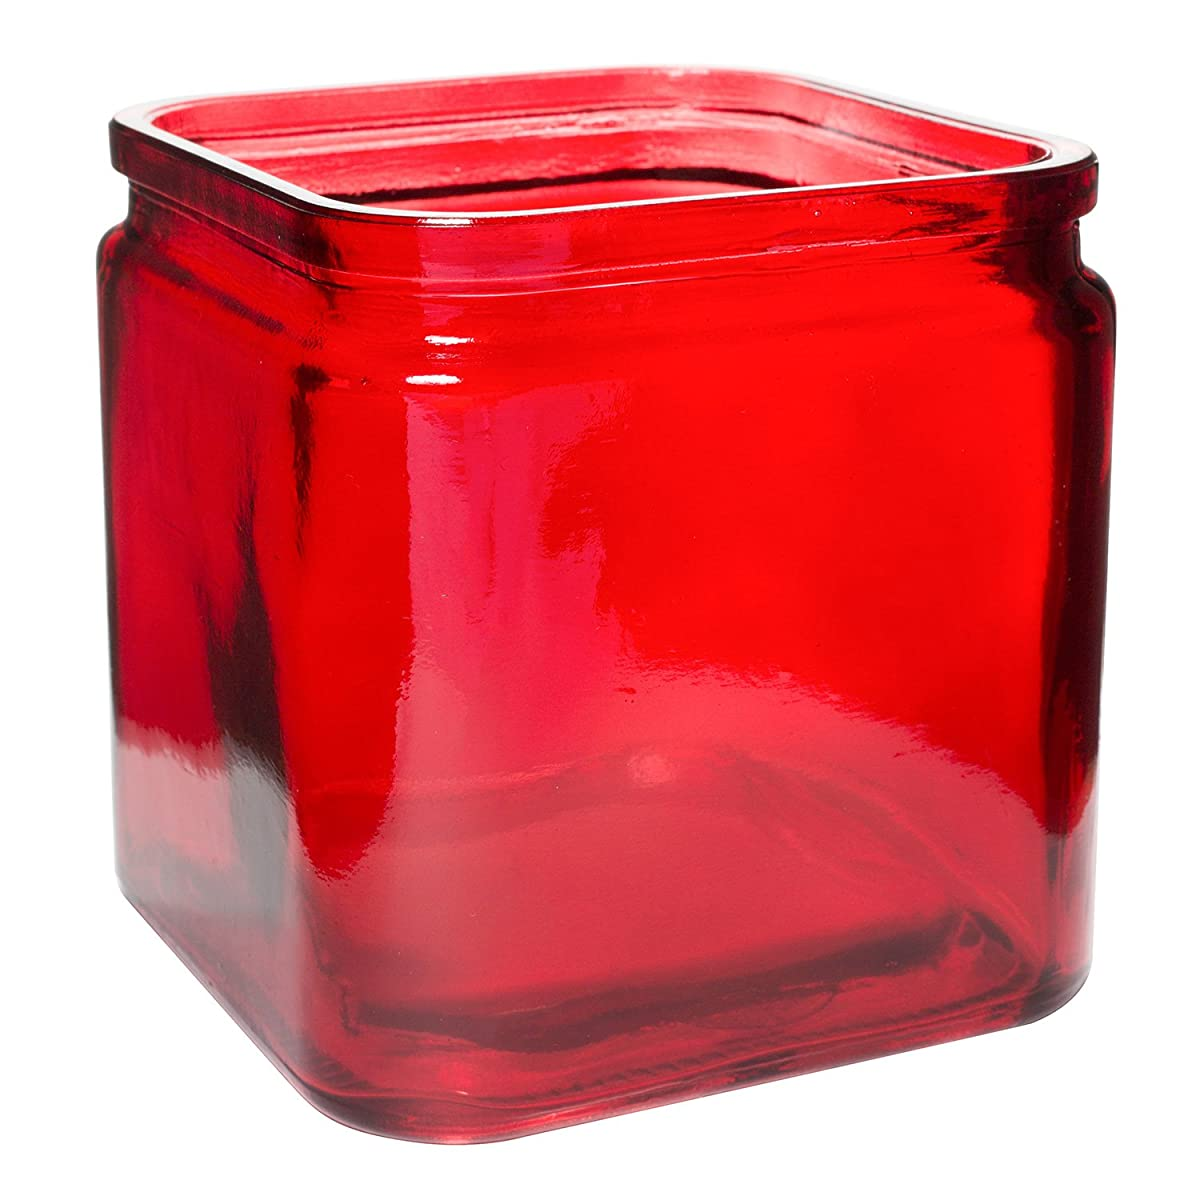 "Royal Imports Flower Rose Glass Lip Cube Vase Decorative Centerpiece for Home or Wedding - 5"" Tall, 5"" Opening, Red"